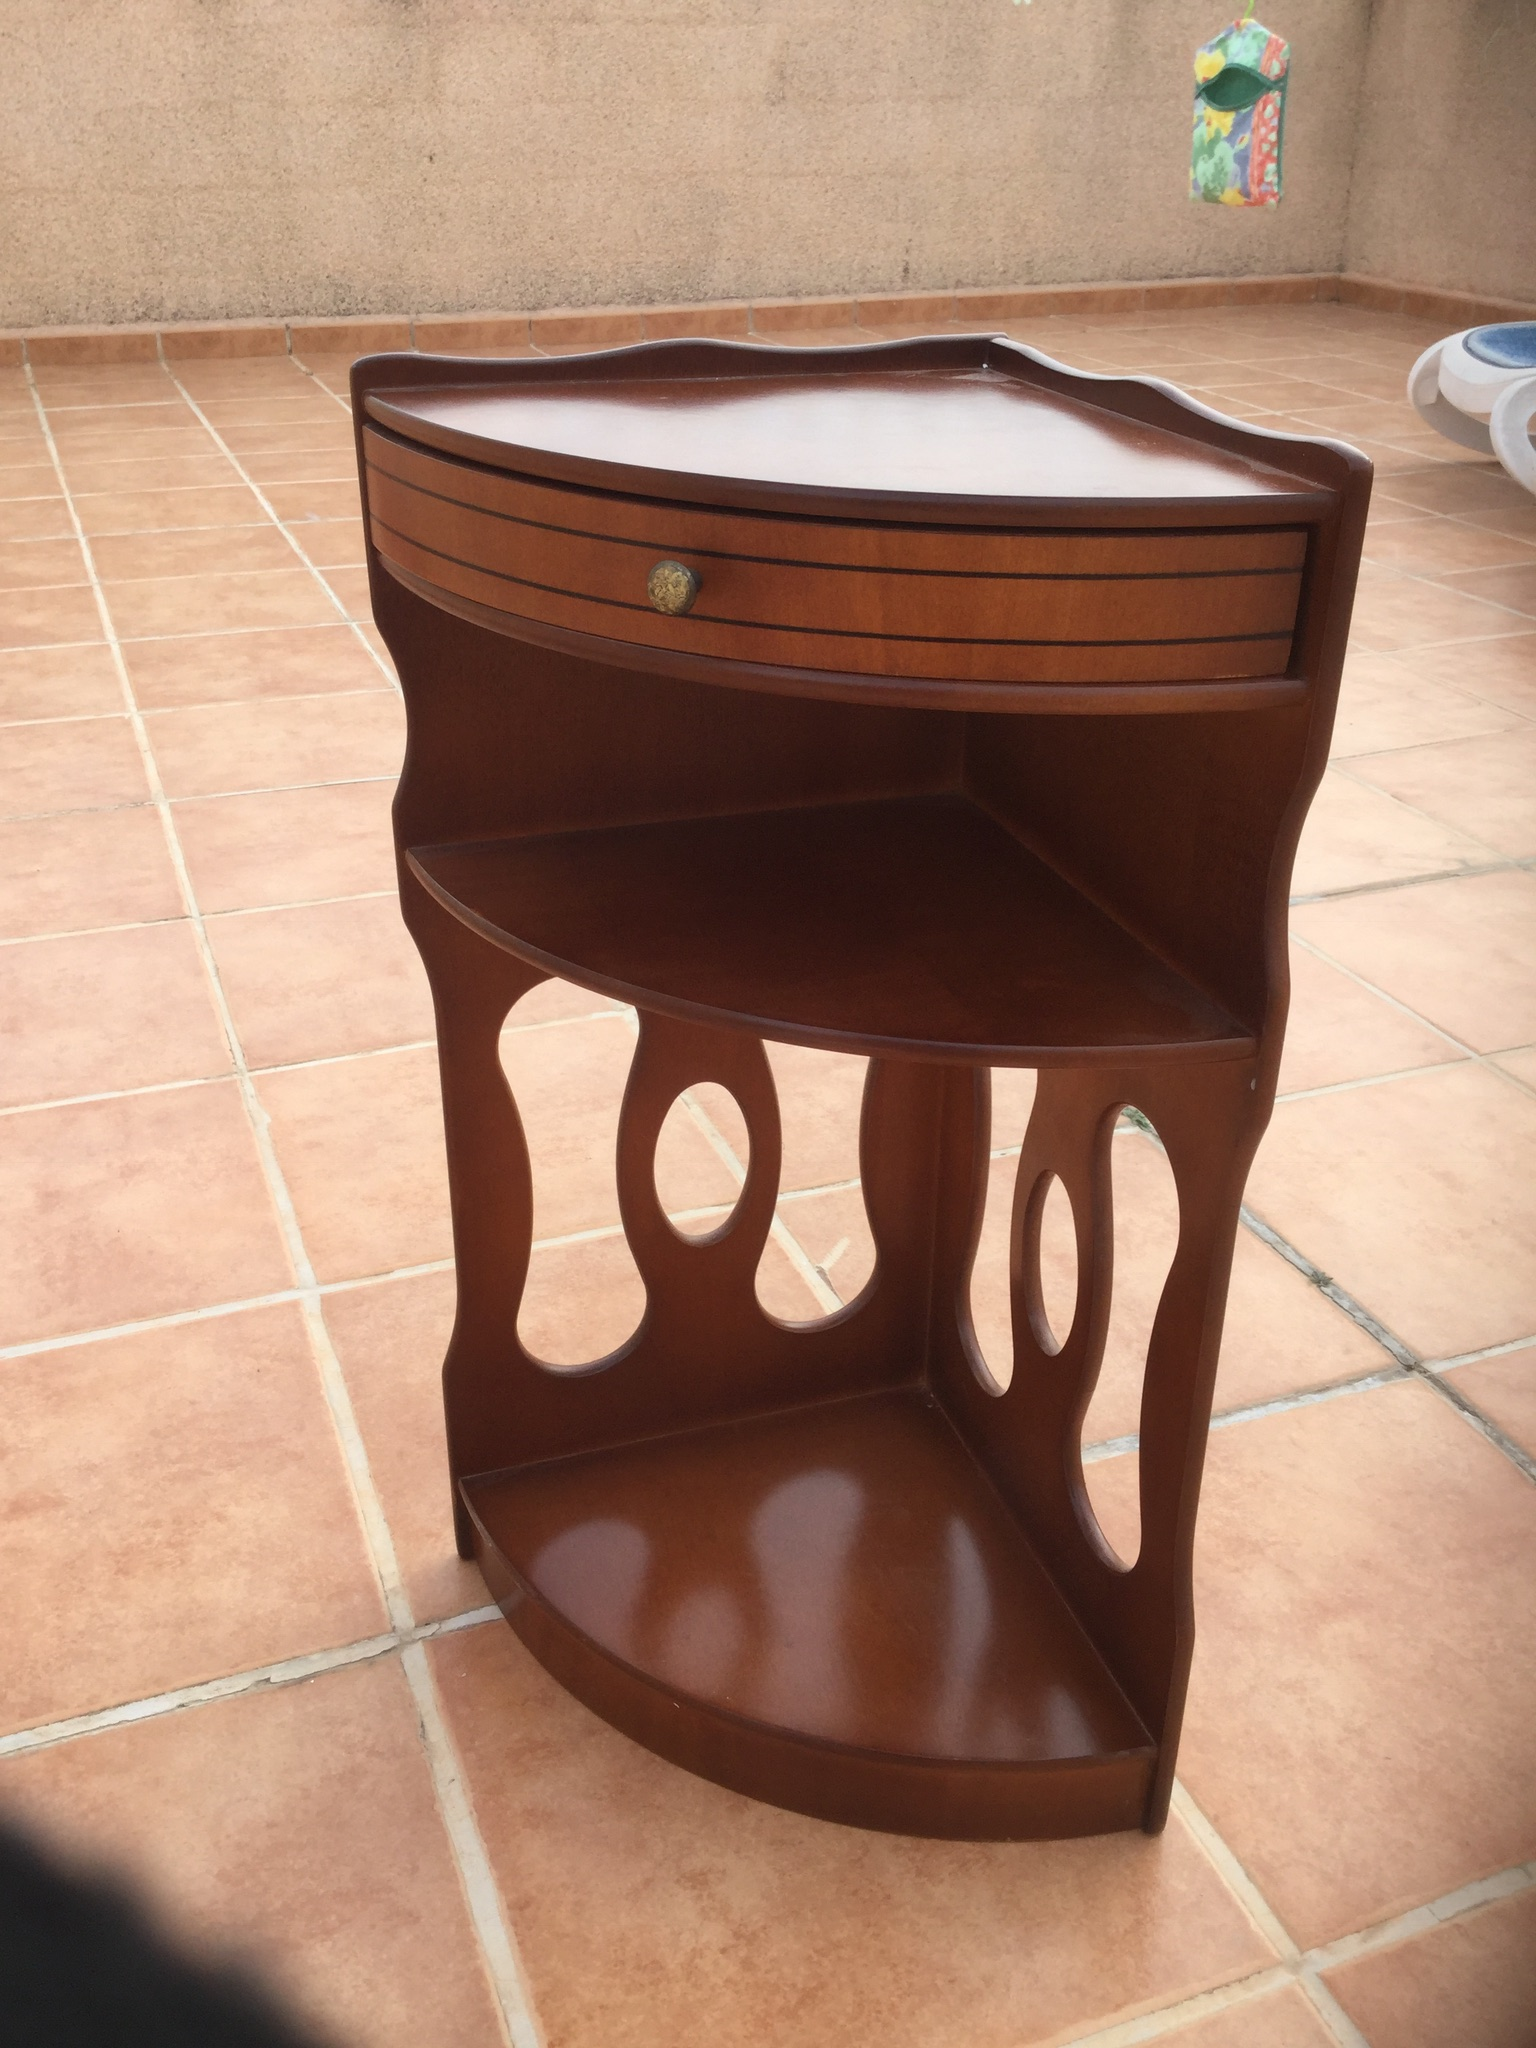 For sale: corner unit in mahogany sold